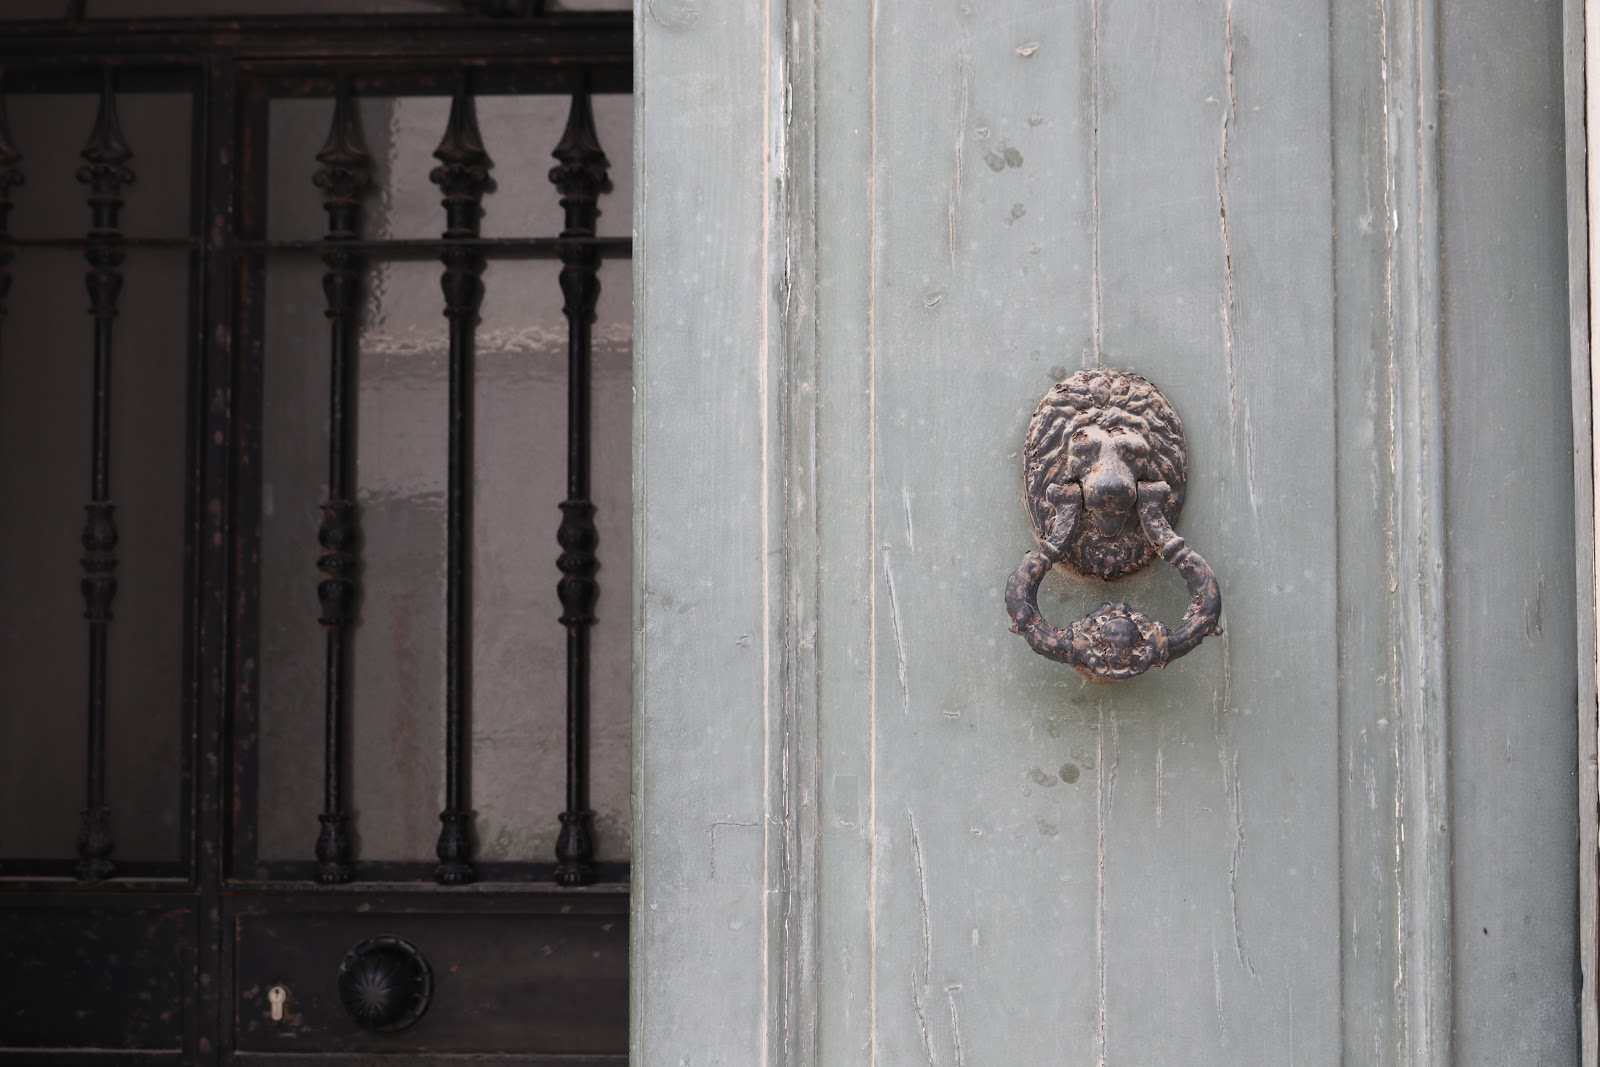 Lion door nob in Tarifa, Spain